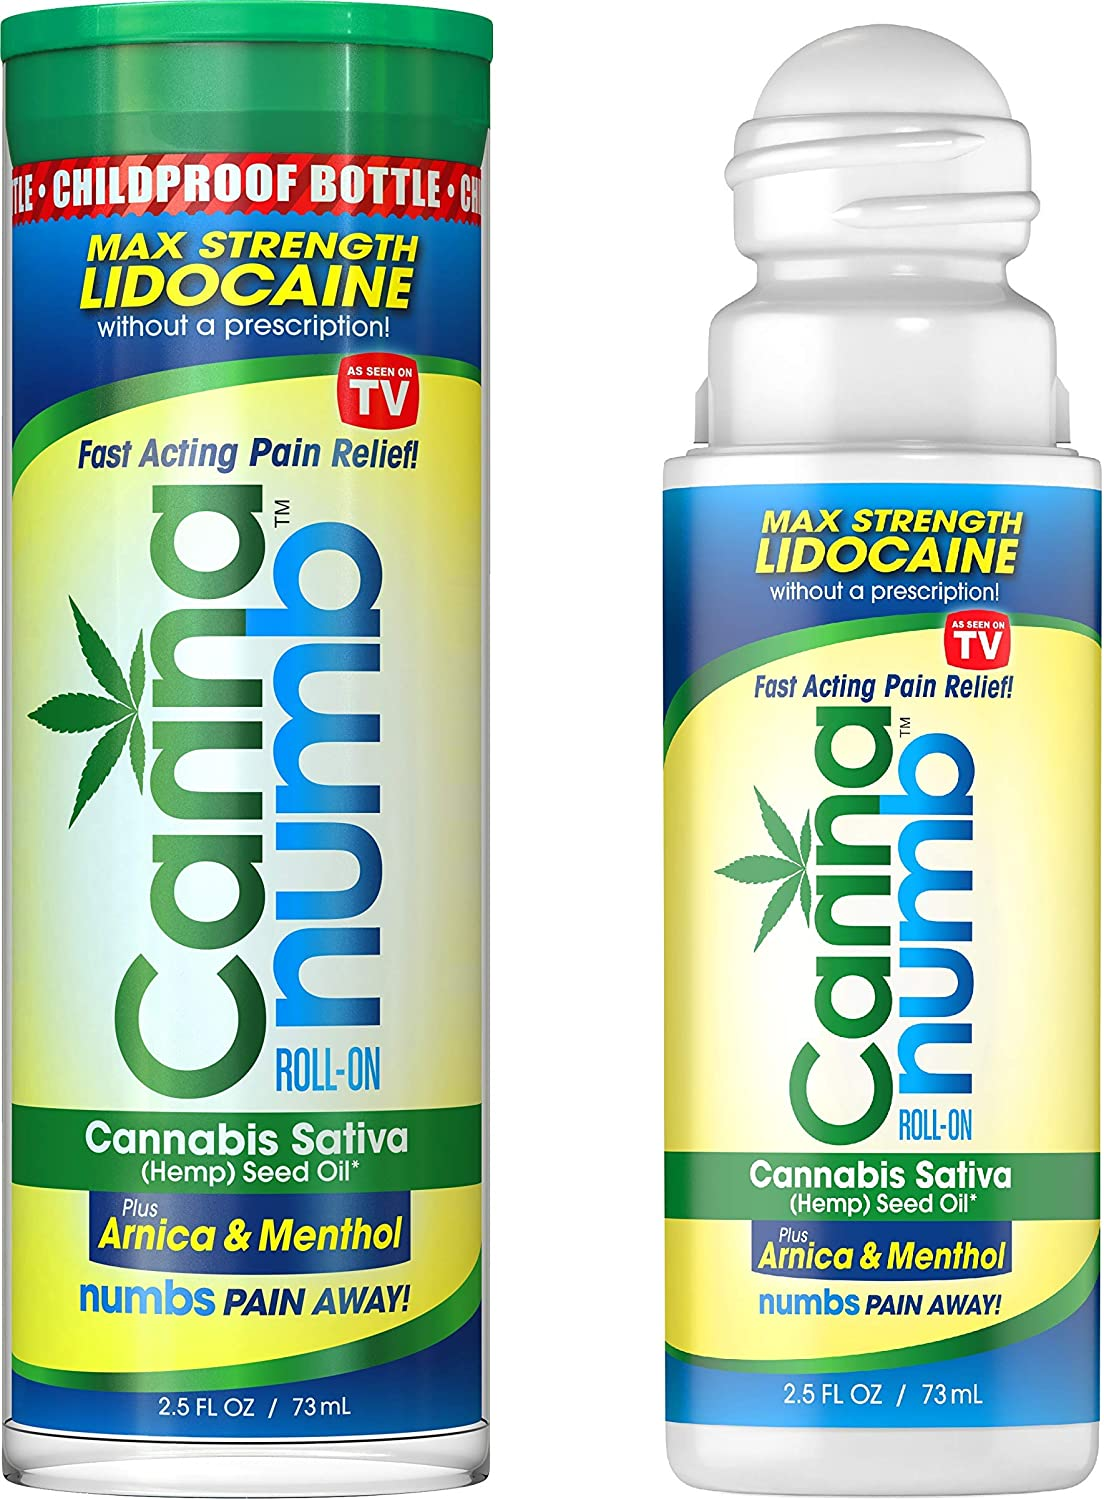 Cannanumb Pain Relief Liquid Roll-On, FDA Registered, Certified Organic Cannabis Sativa (Hemp) Seed Oil, Formulated with 4% Lidocaine and 1% Menthol to Rapidly Relieve Muscle Aches and Joint Pain